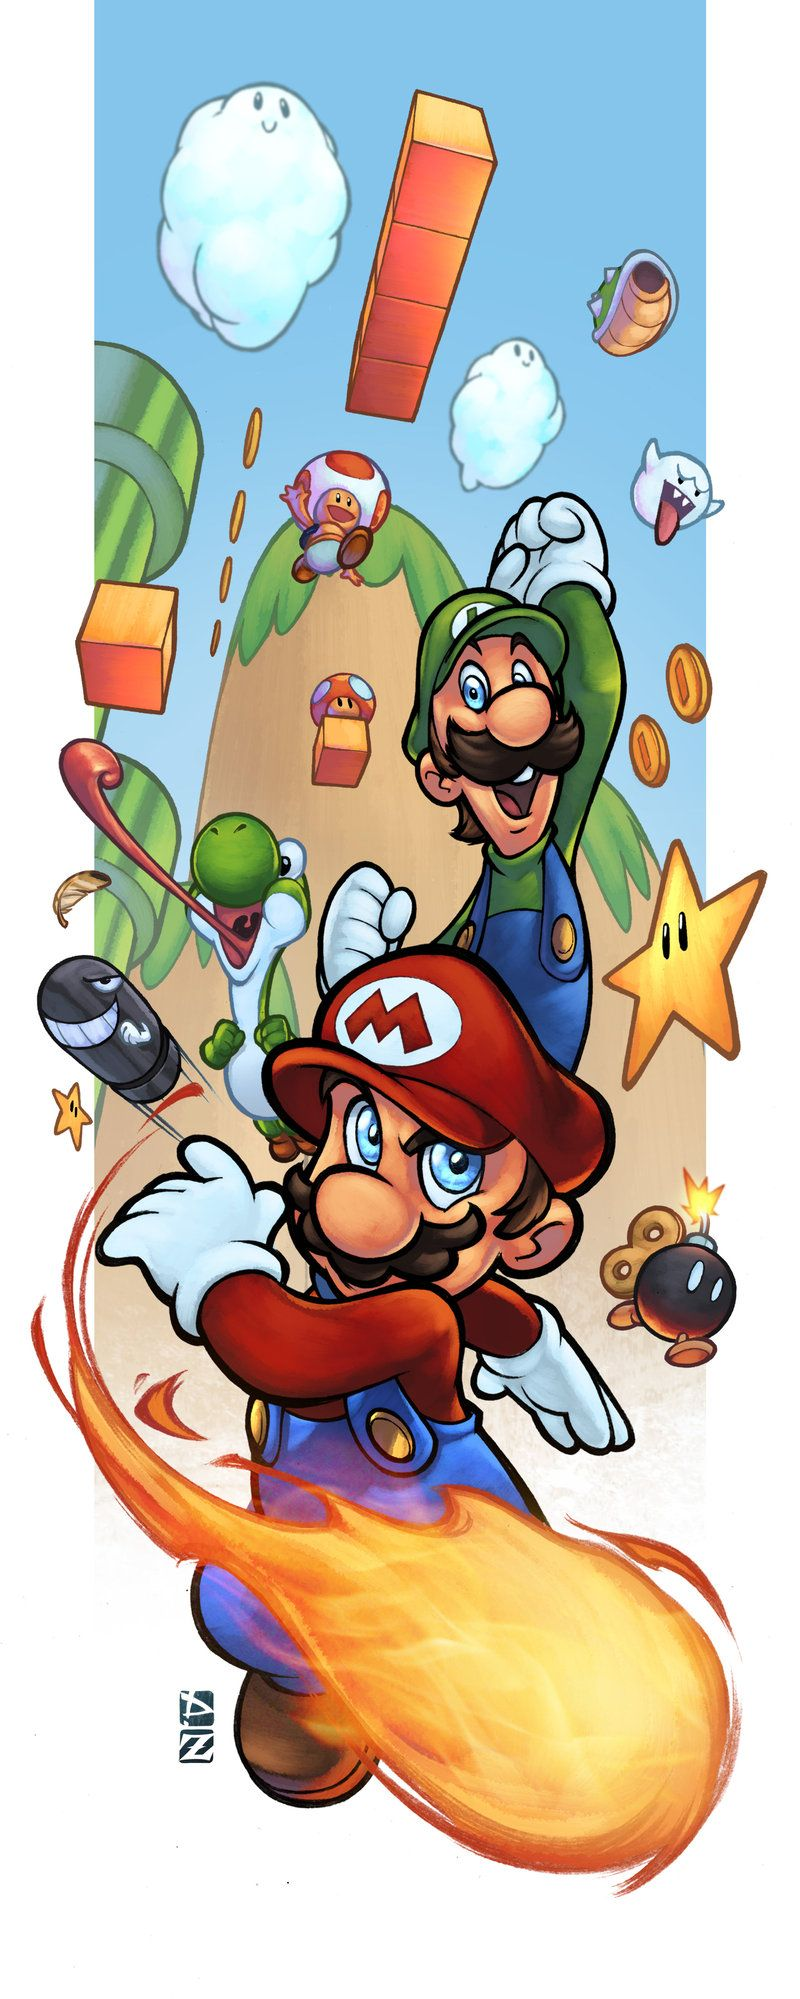 The Cartoons Comics Of Ander Zarate Mario Mario Luigi Mario